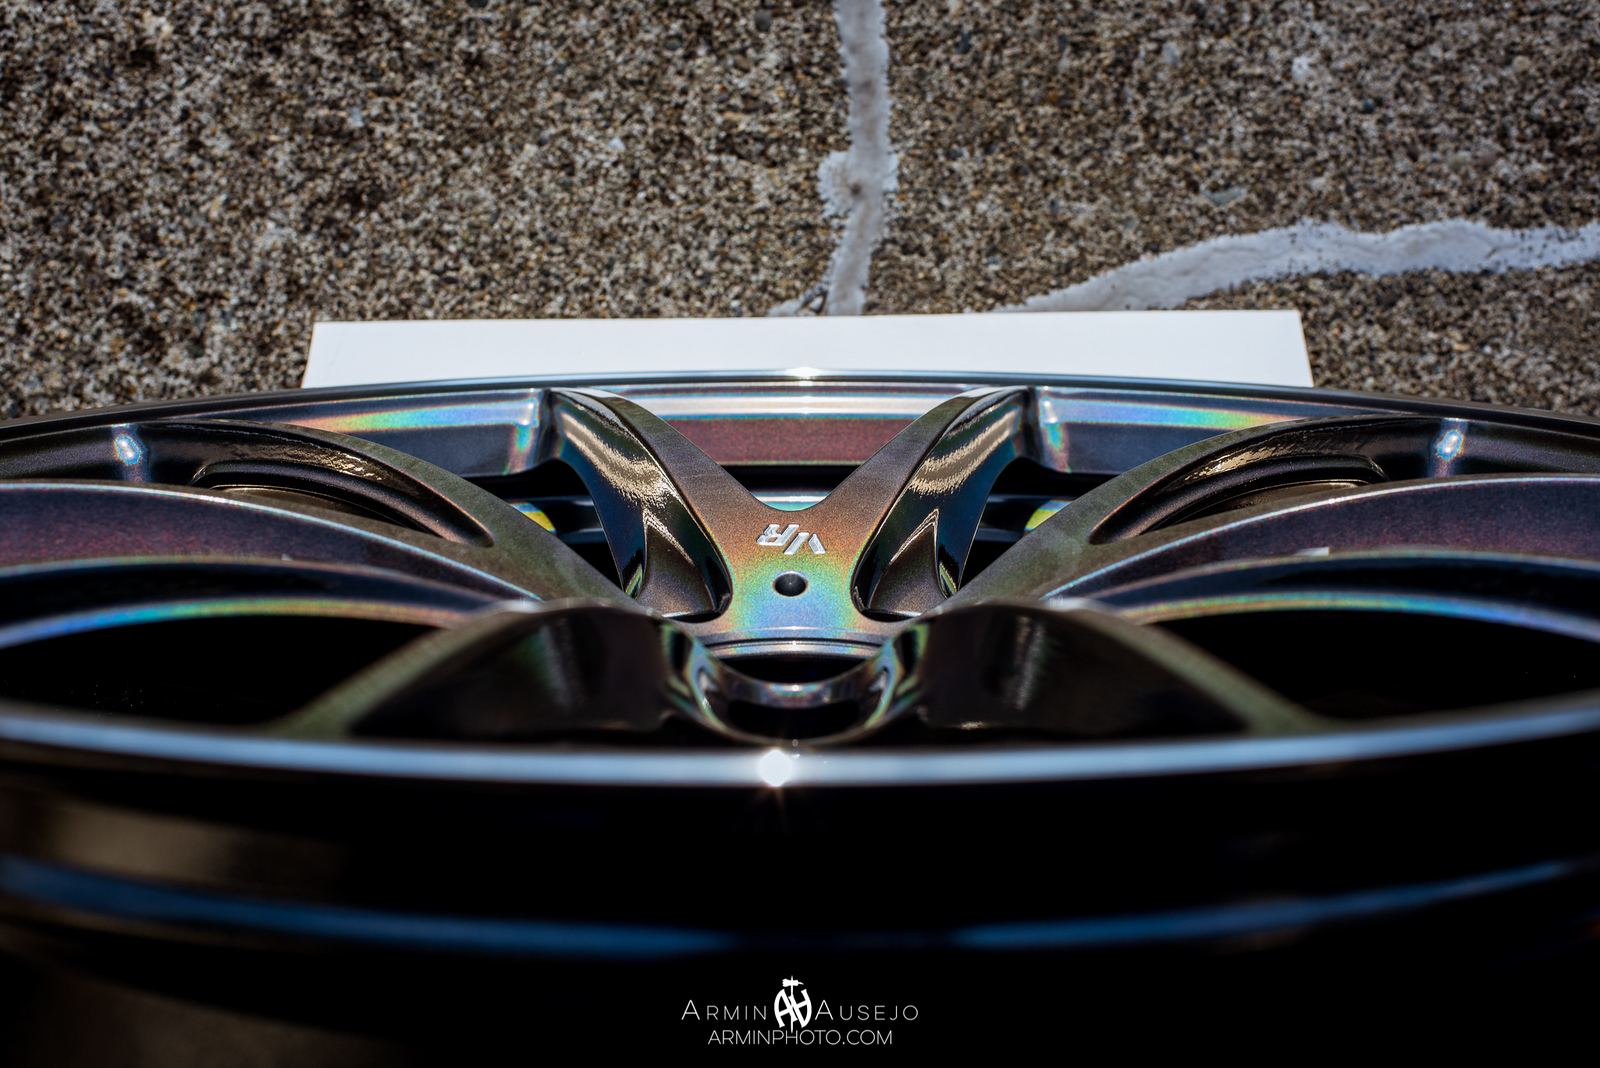 Volk Racing G25 in Dark Prism concave close-up